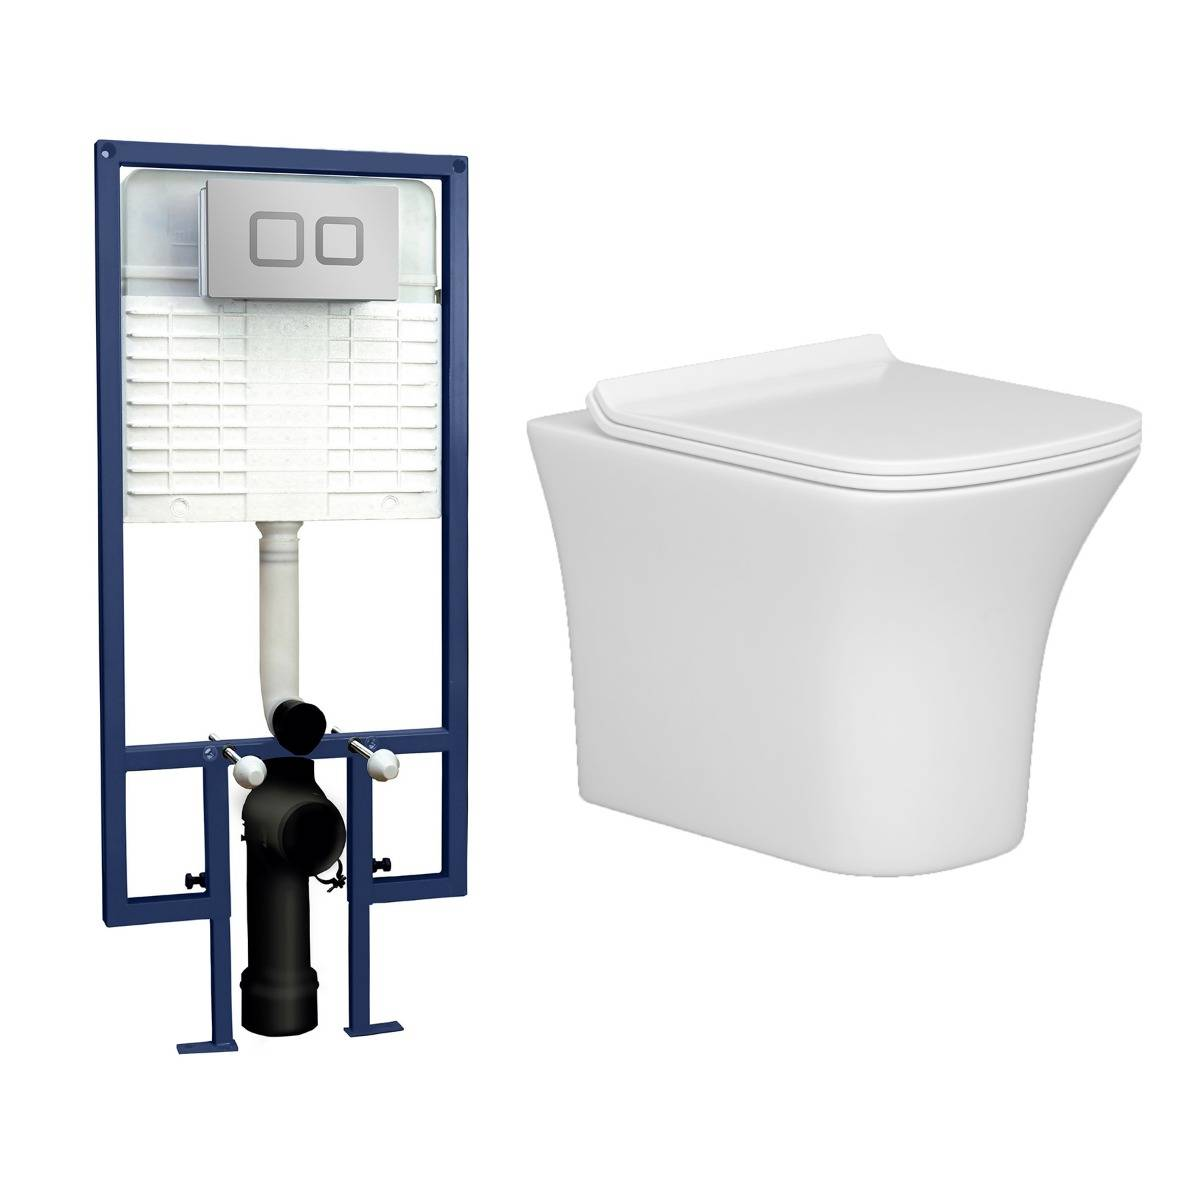 Royal Bathrooms Cube Short Projection Wall Hung Rimless Toilet with Slim Soft Close Seat & Wall Hung Frame - Square Push Button